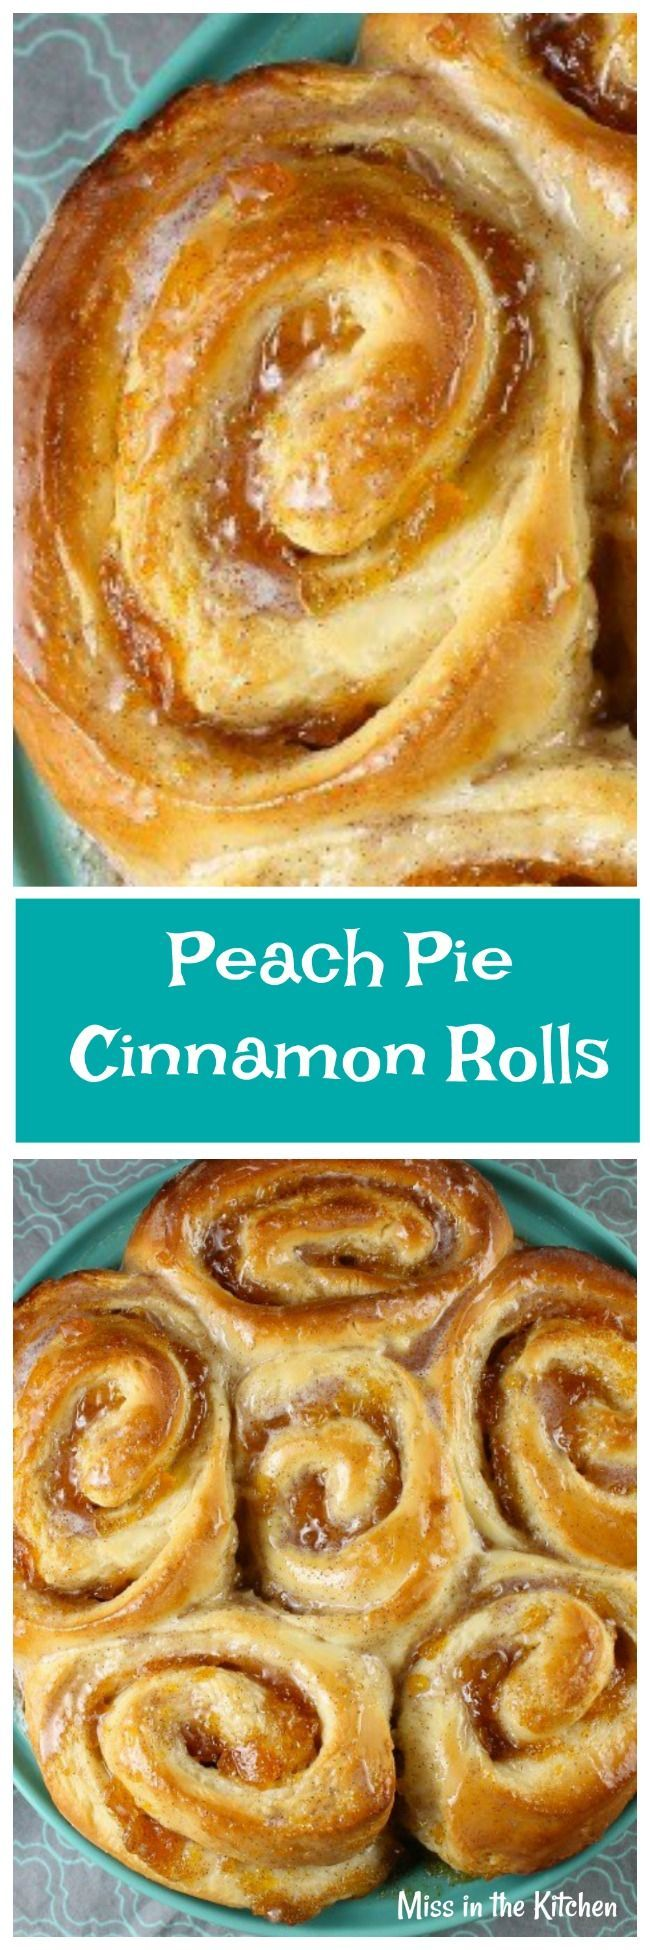 Peach Pie Cinnamon Rolls Recipe is the perfect morning treat for any day of the week. From MissintheKitchen.com #ad #redstaryeast #cinnamonrolls